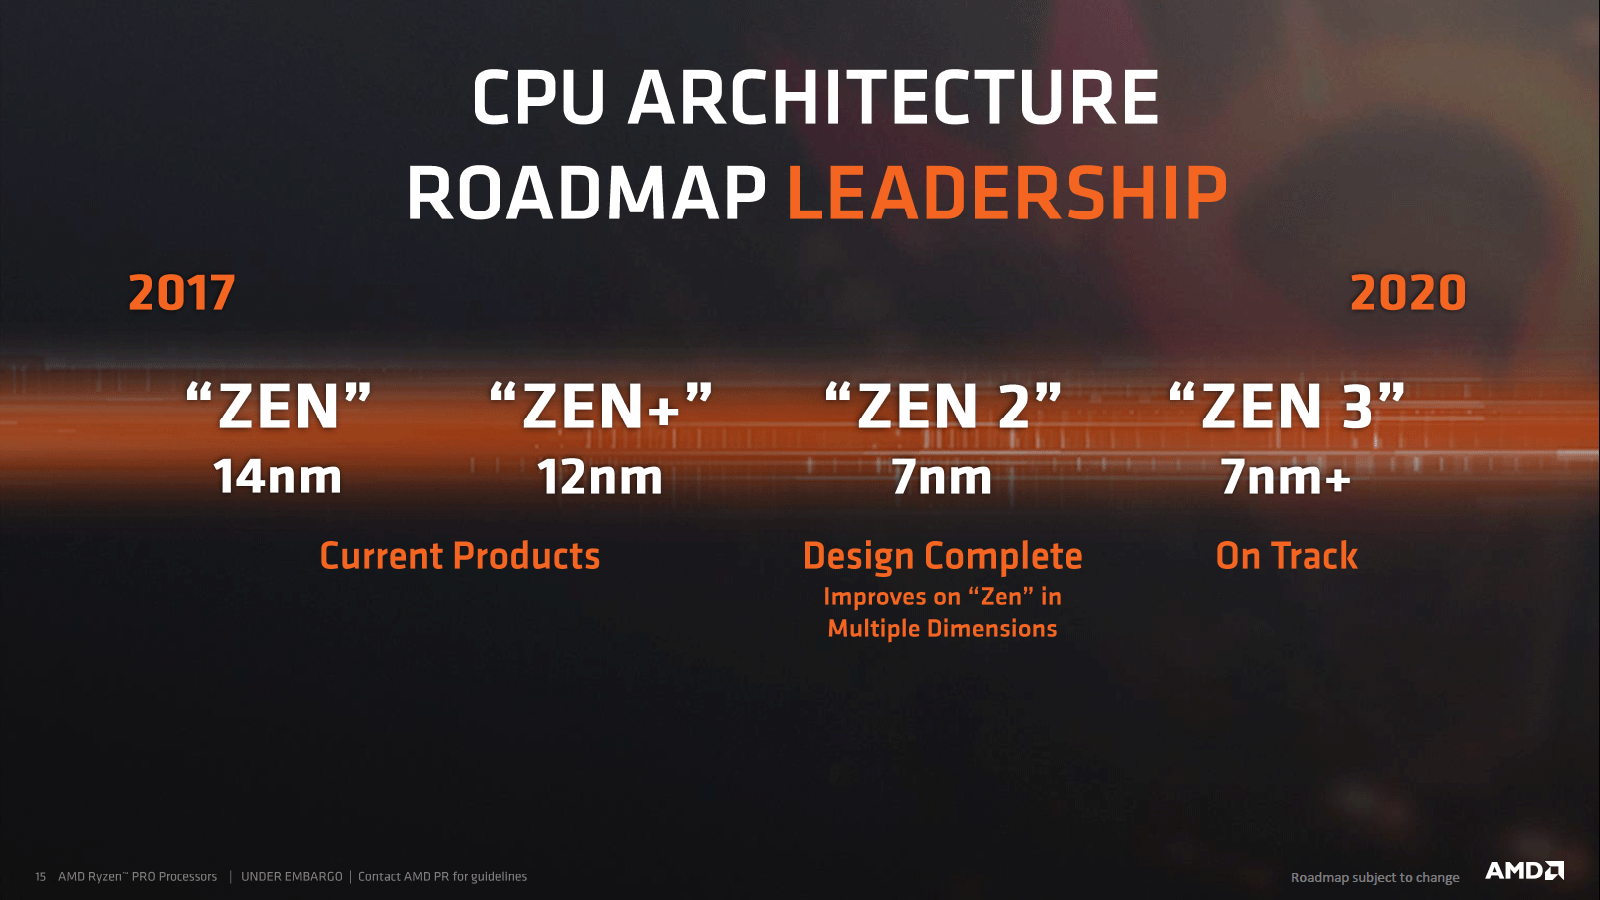 Rumor] AMD Bringing 12-16 Core Ryzen CPUs to AM4 in 2019, Roadmap